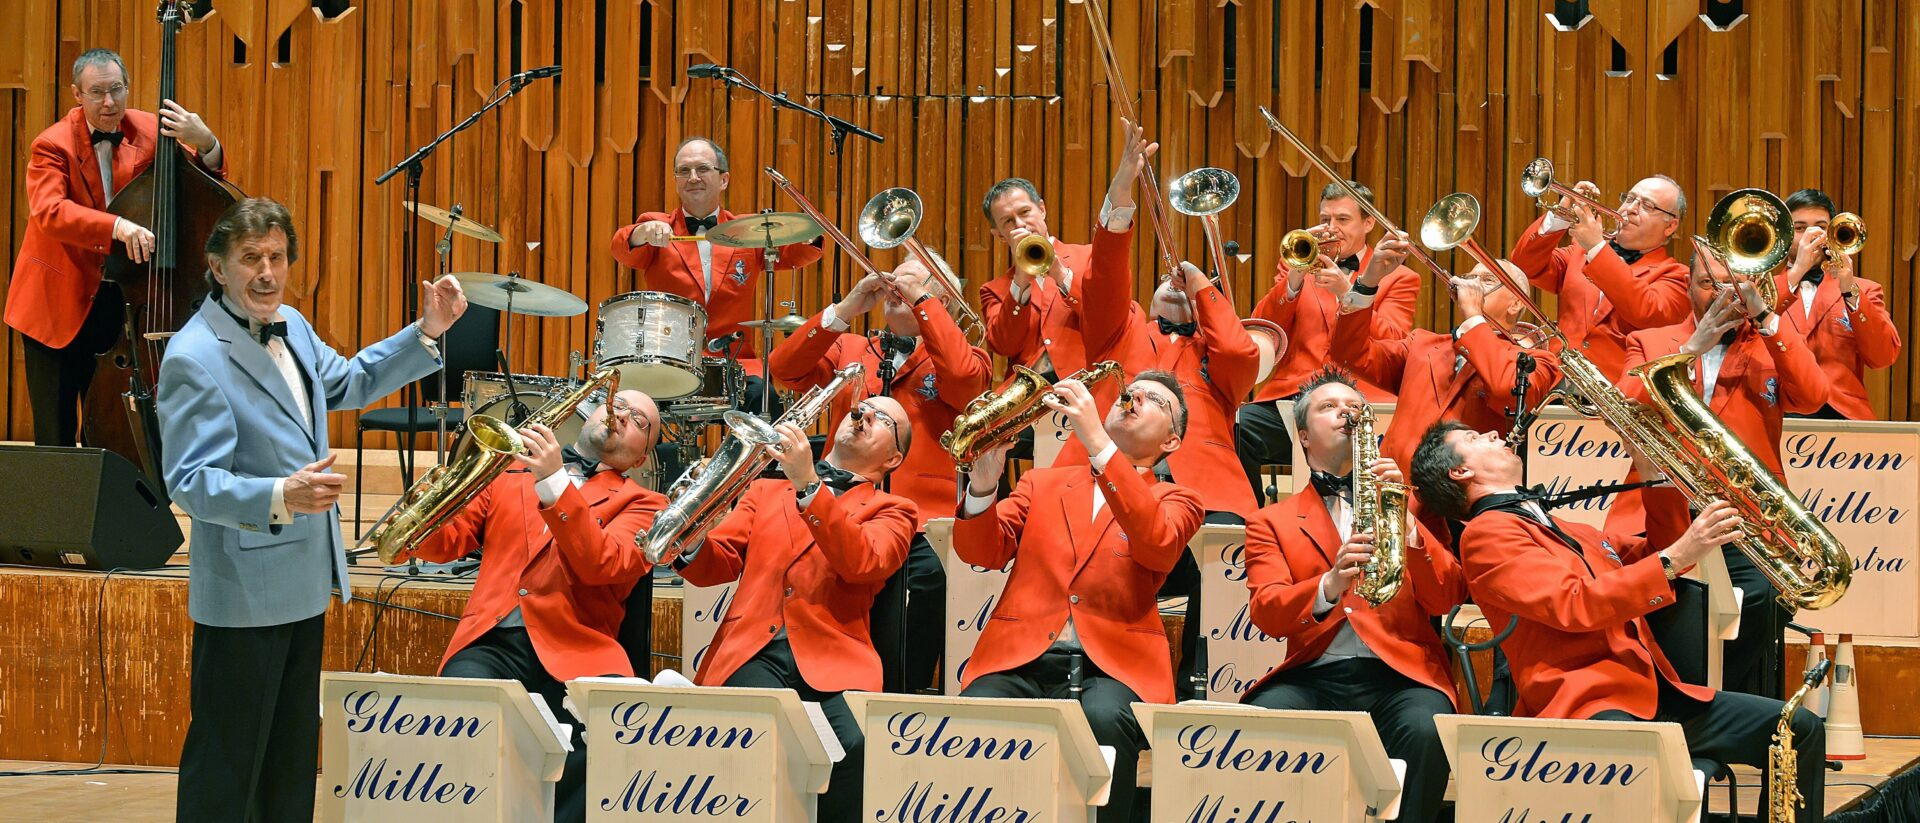 The Glenn Miller Orchestra having fun performing on the Barbican Stage.